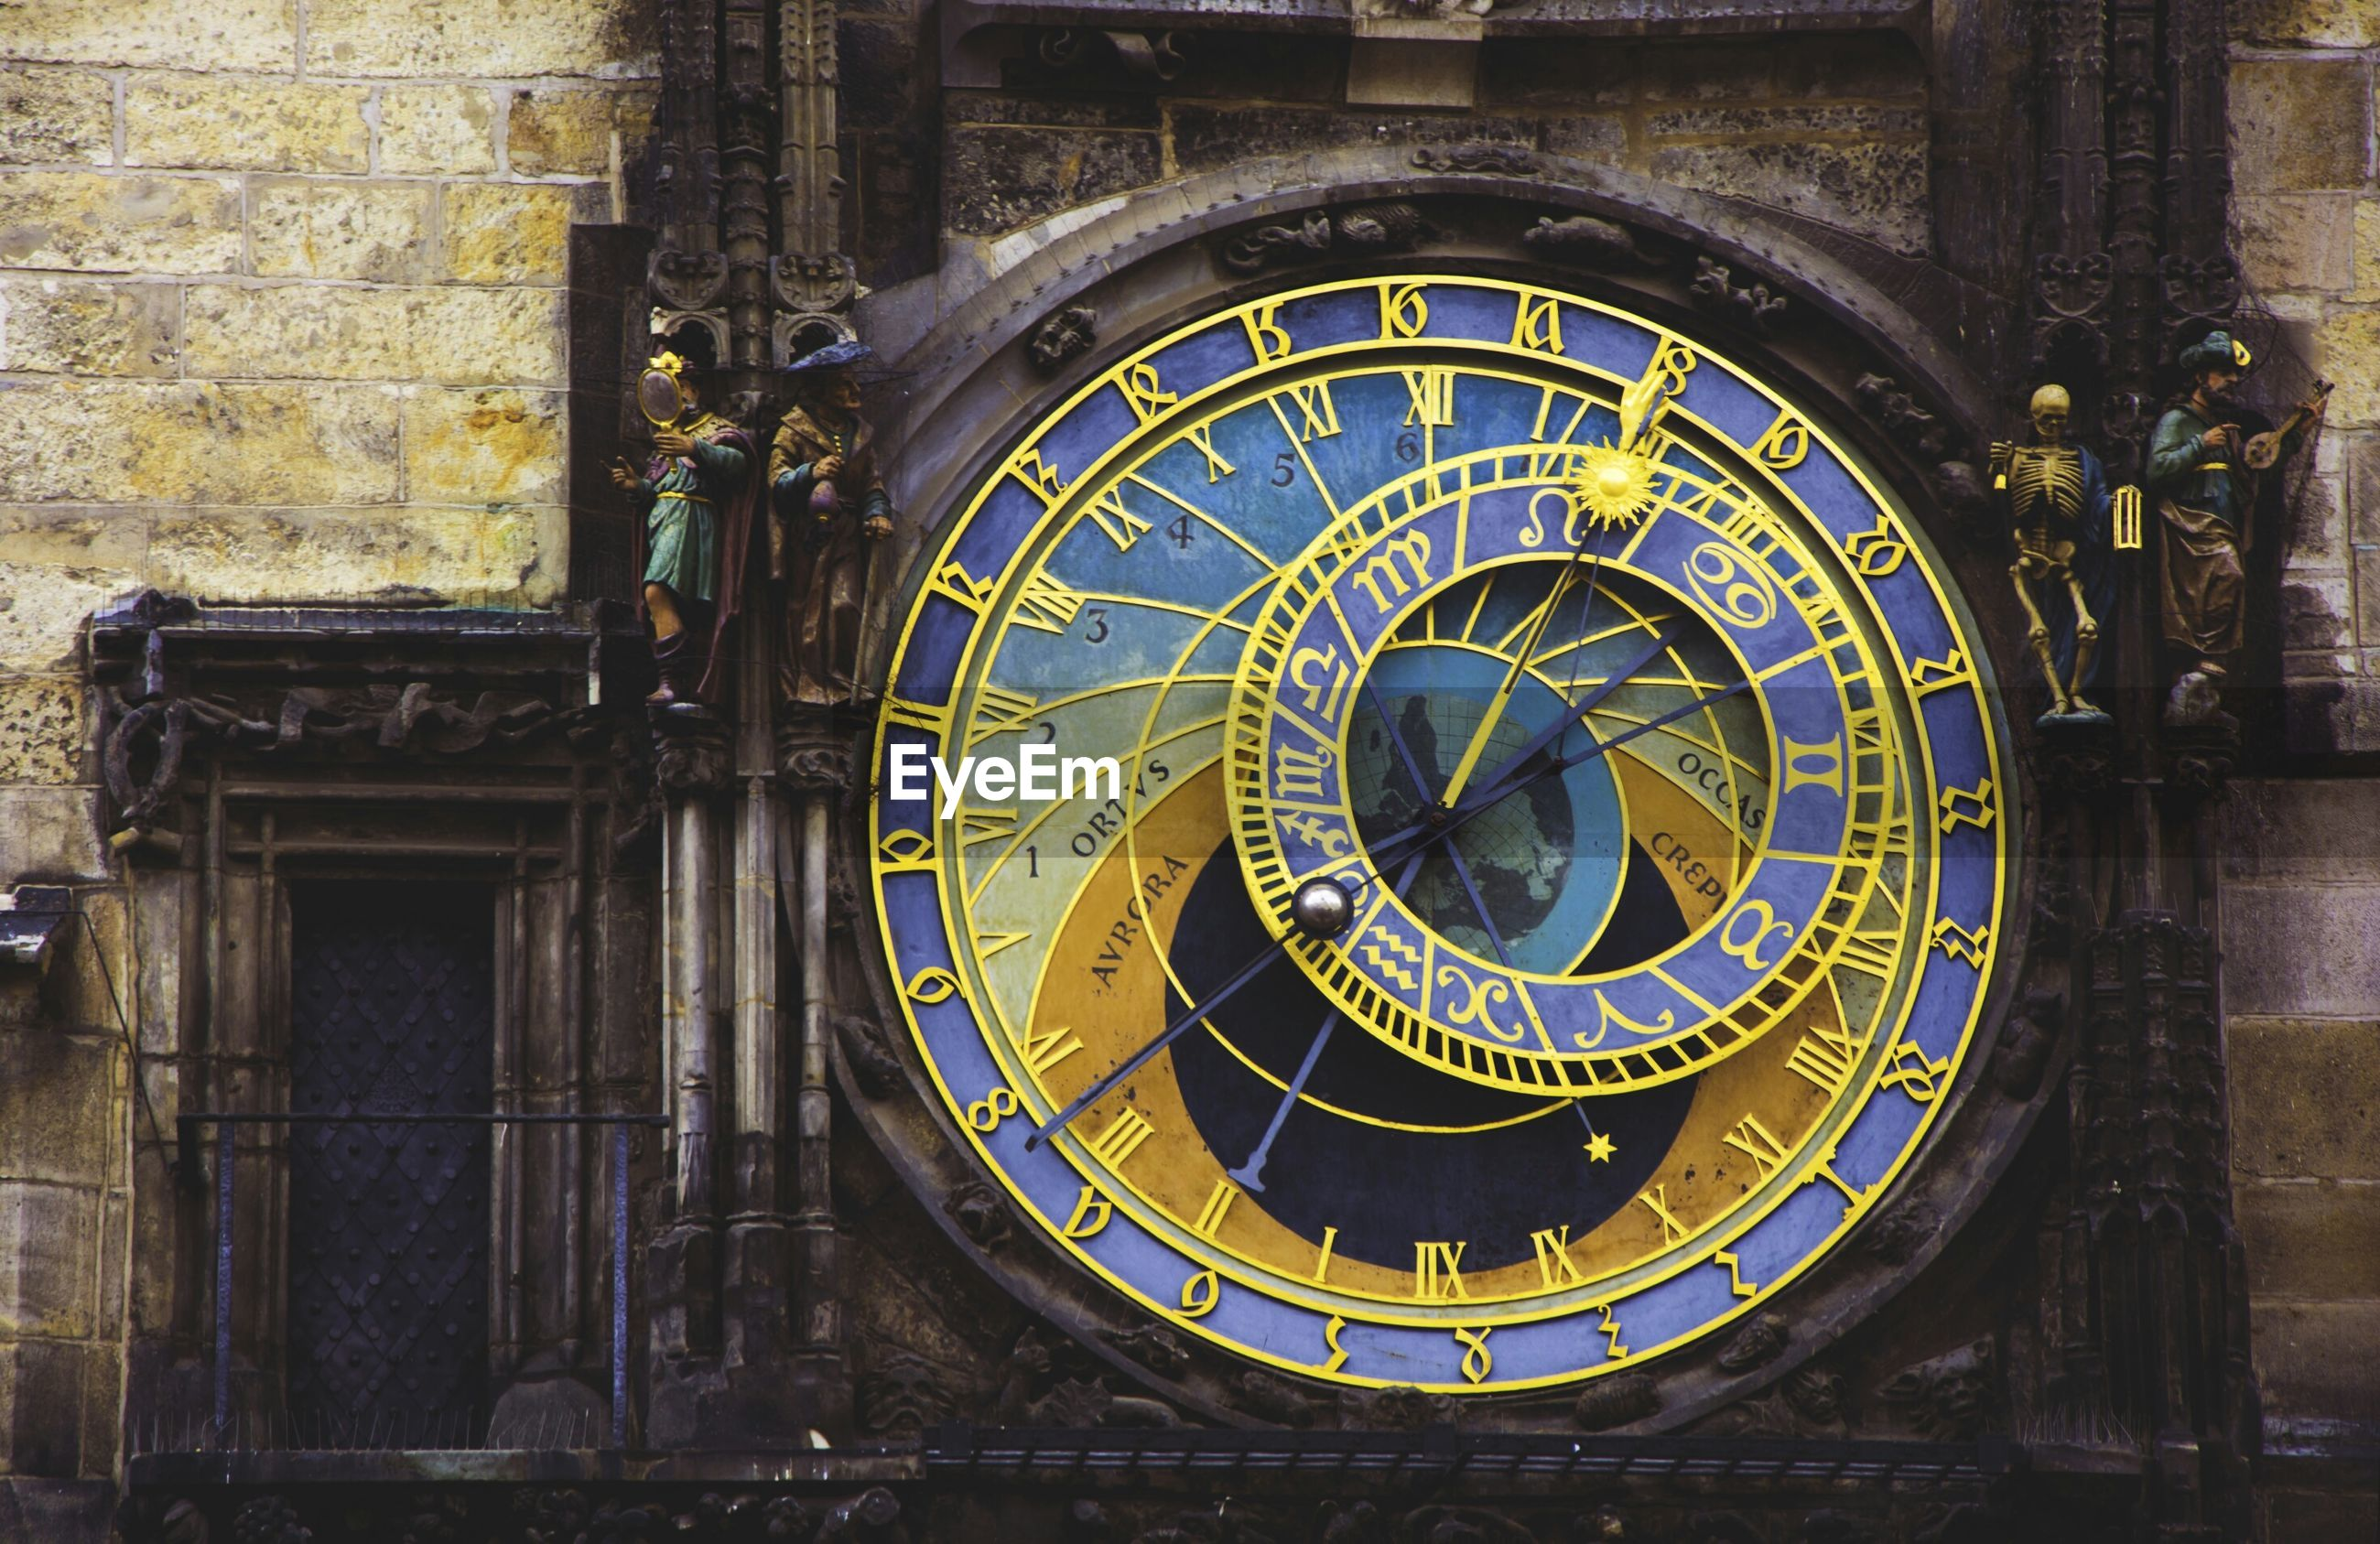 Detail of astronomical clock